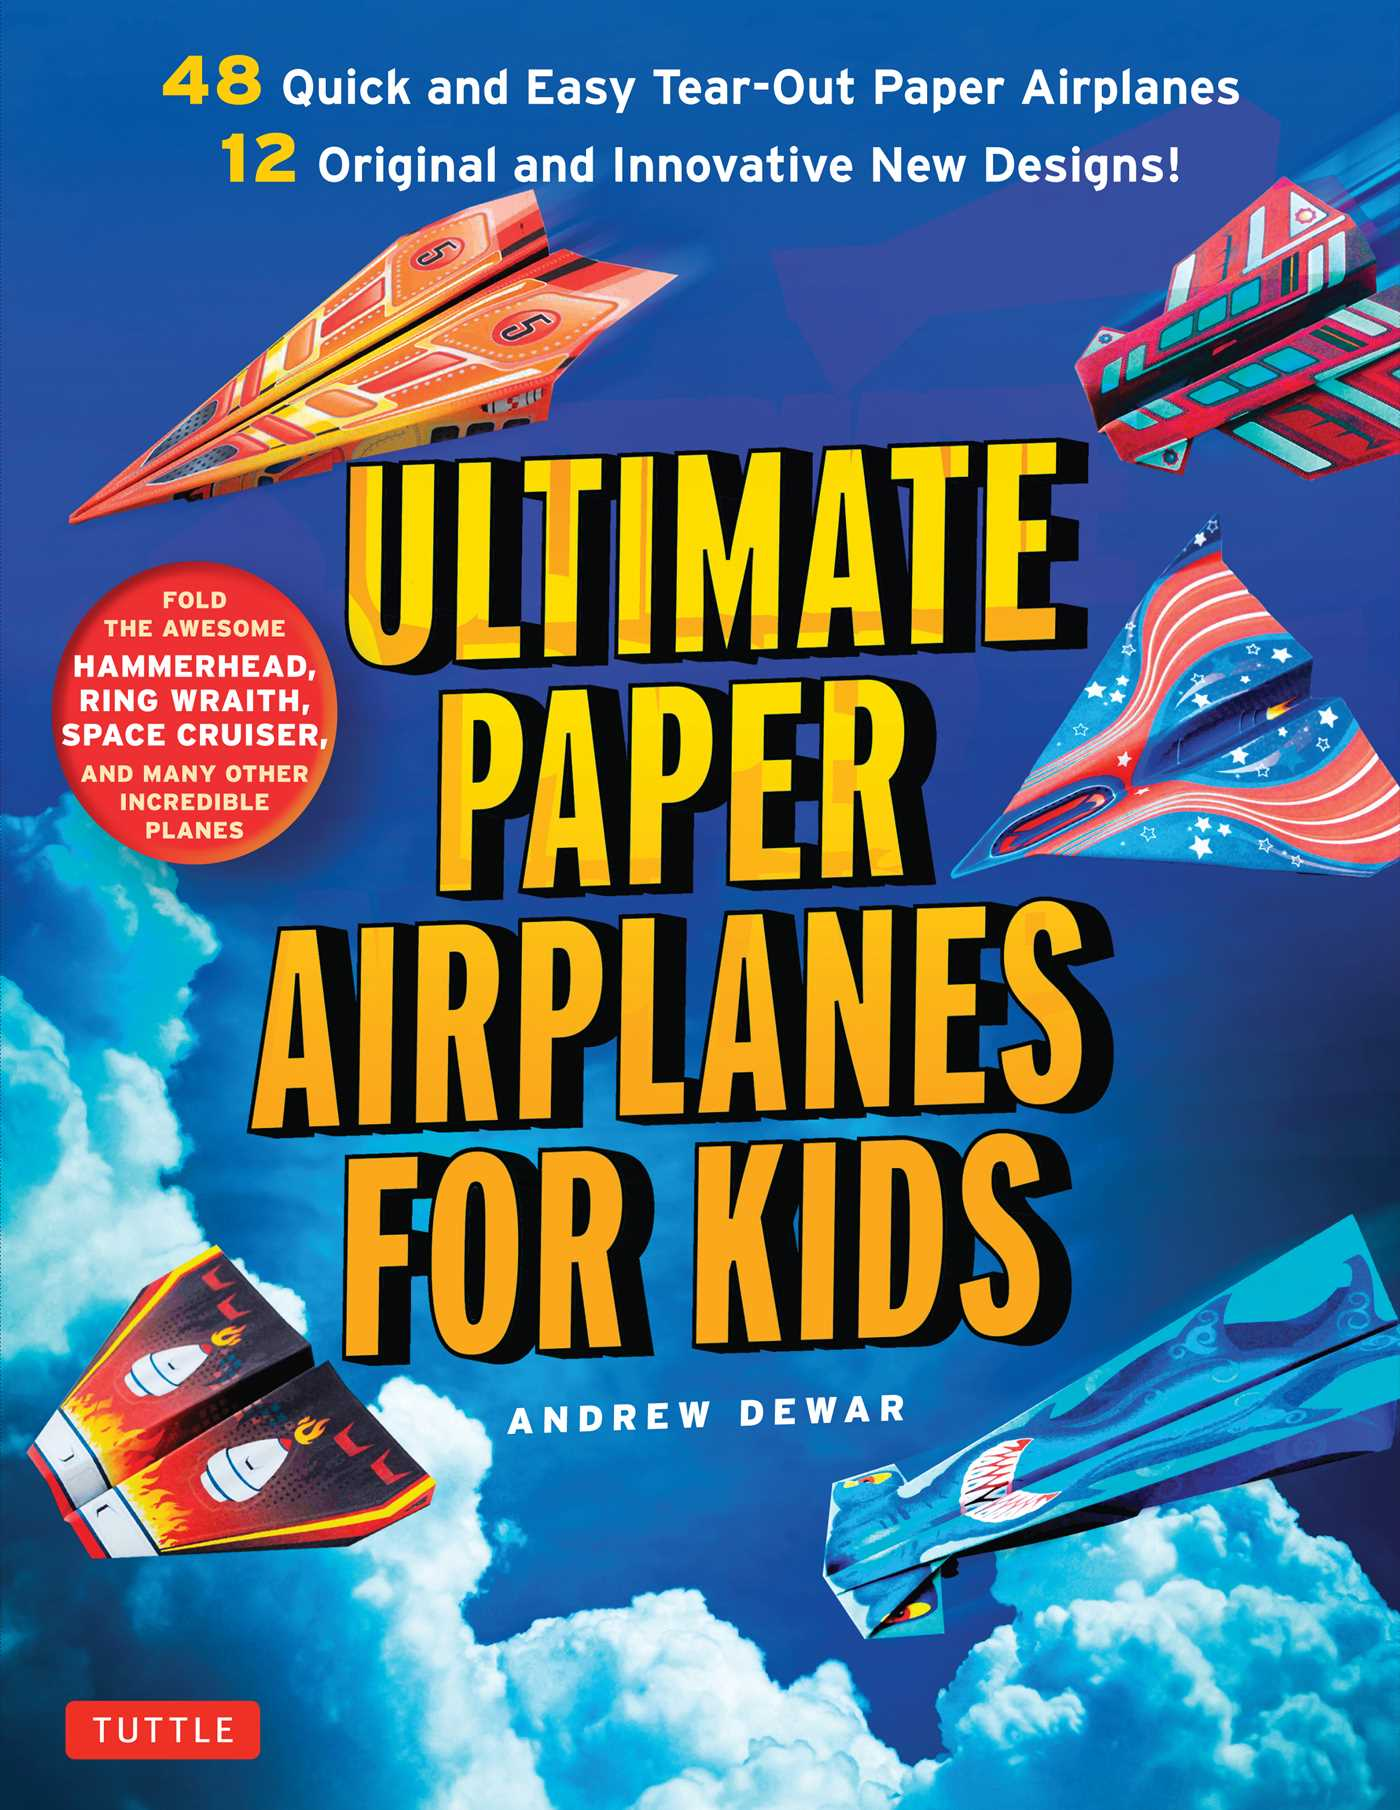 ultimate paper airplanes for kids 9784805313633 hr